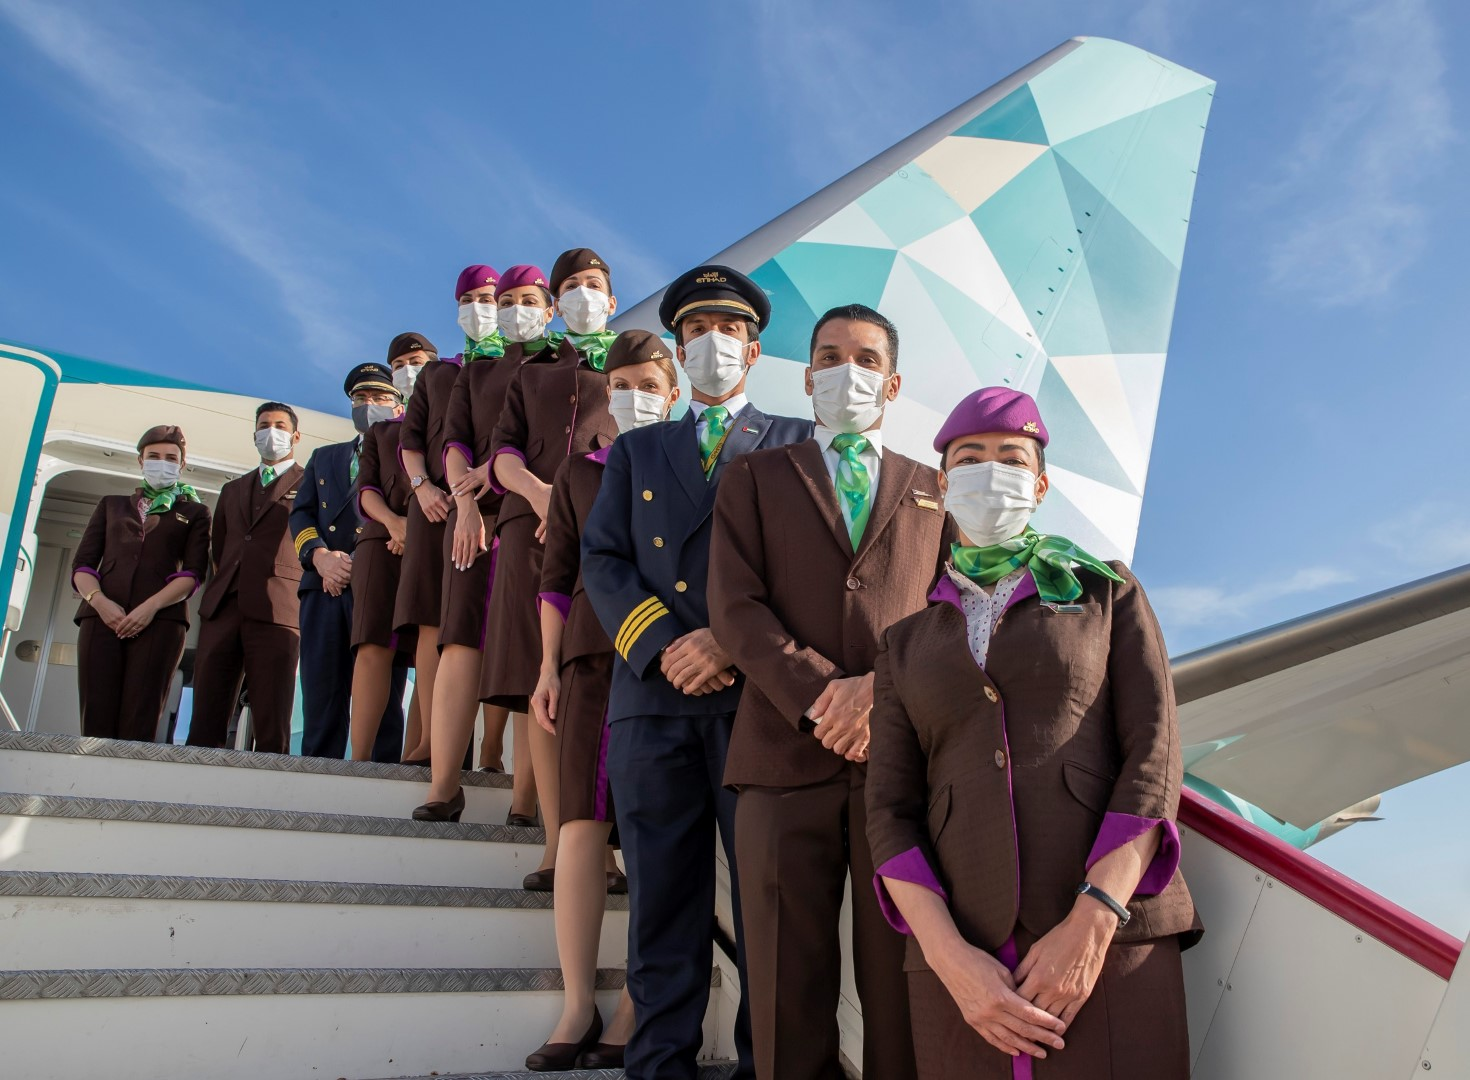 UAE National Carrier Etihad Airways, operates first ecoFlight for 2021 - the Etihad Greenliner